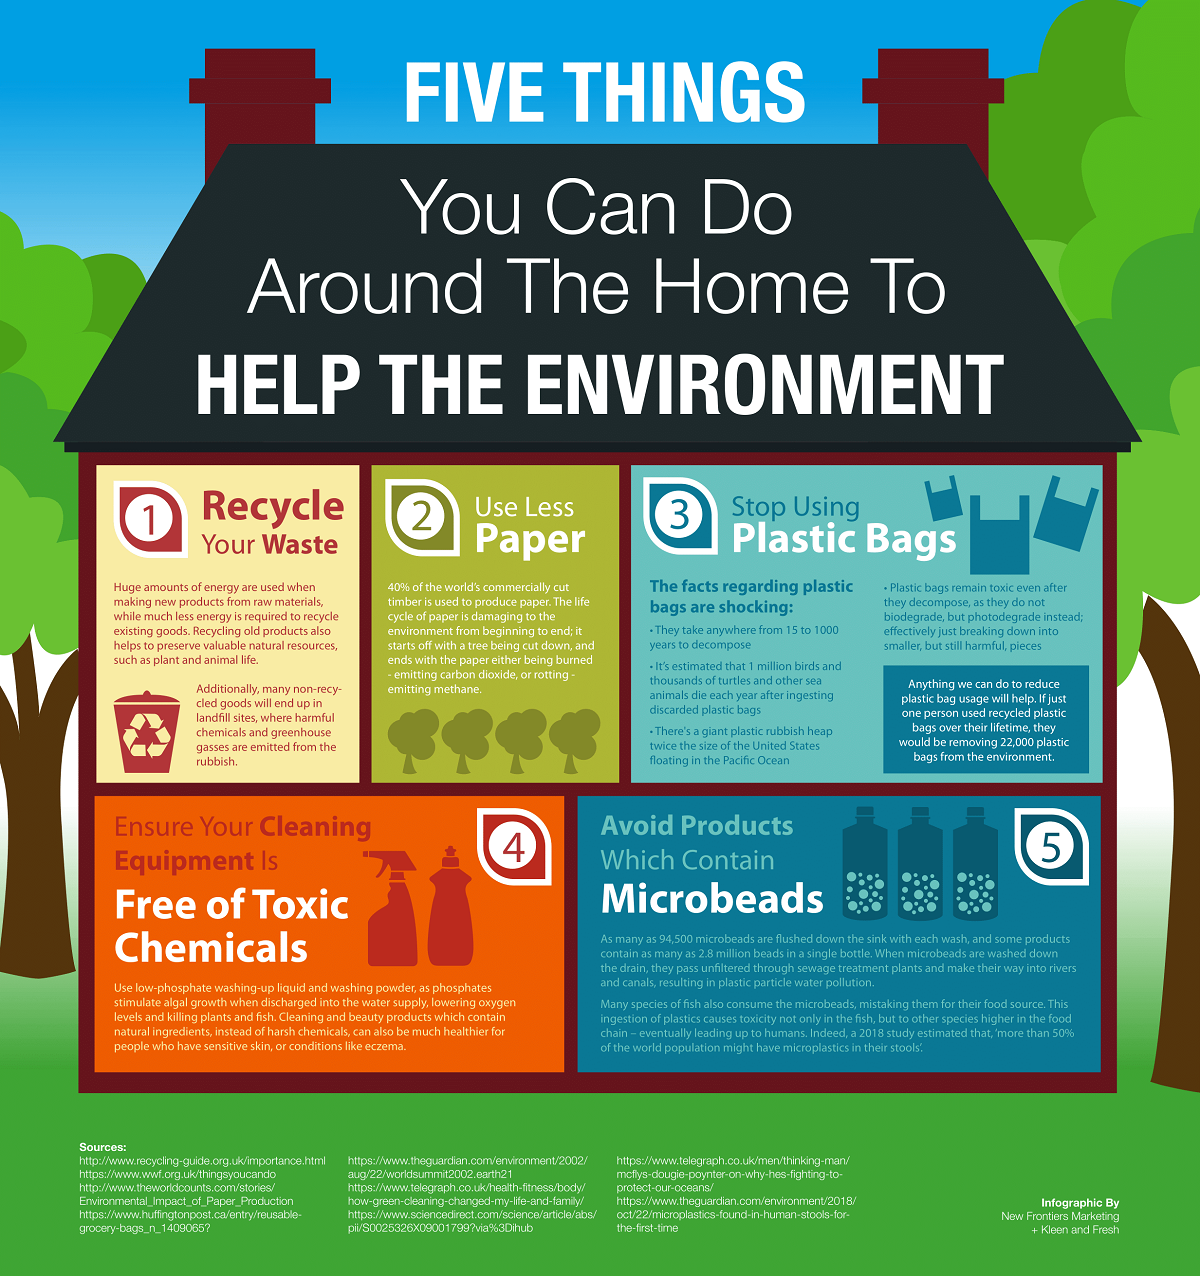 5 Things You Can Do Around the Home to Help the Environment #infographic